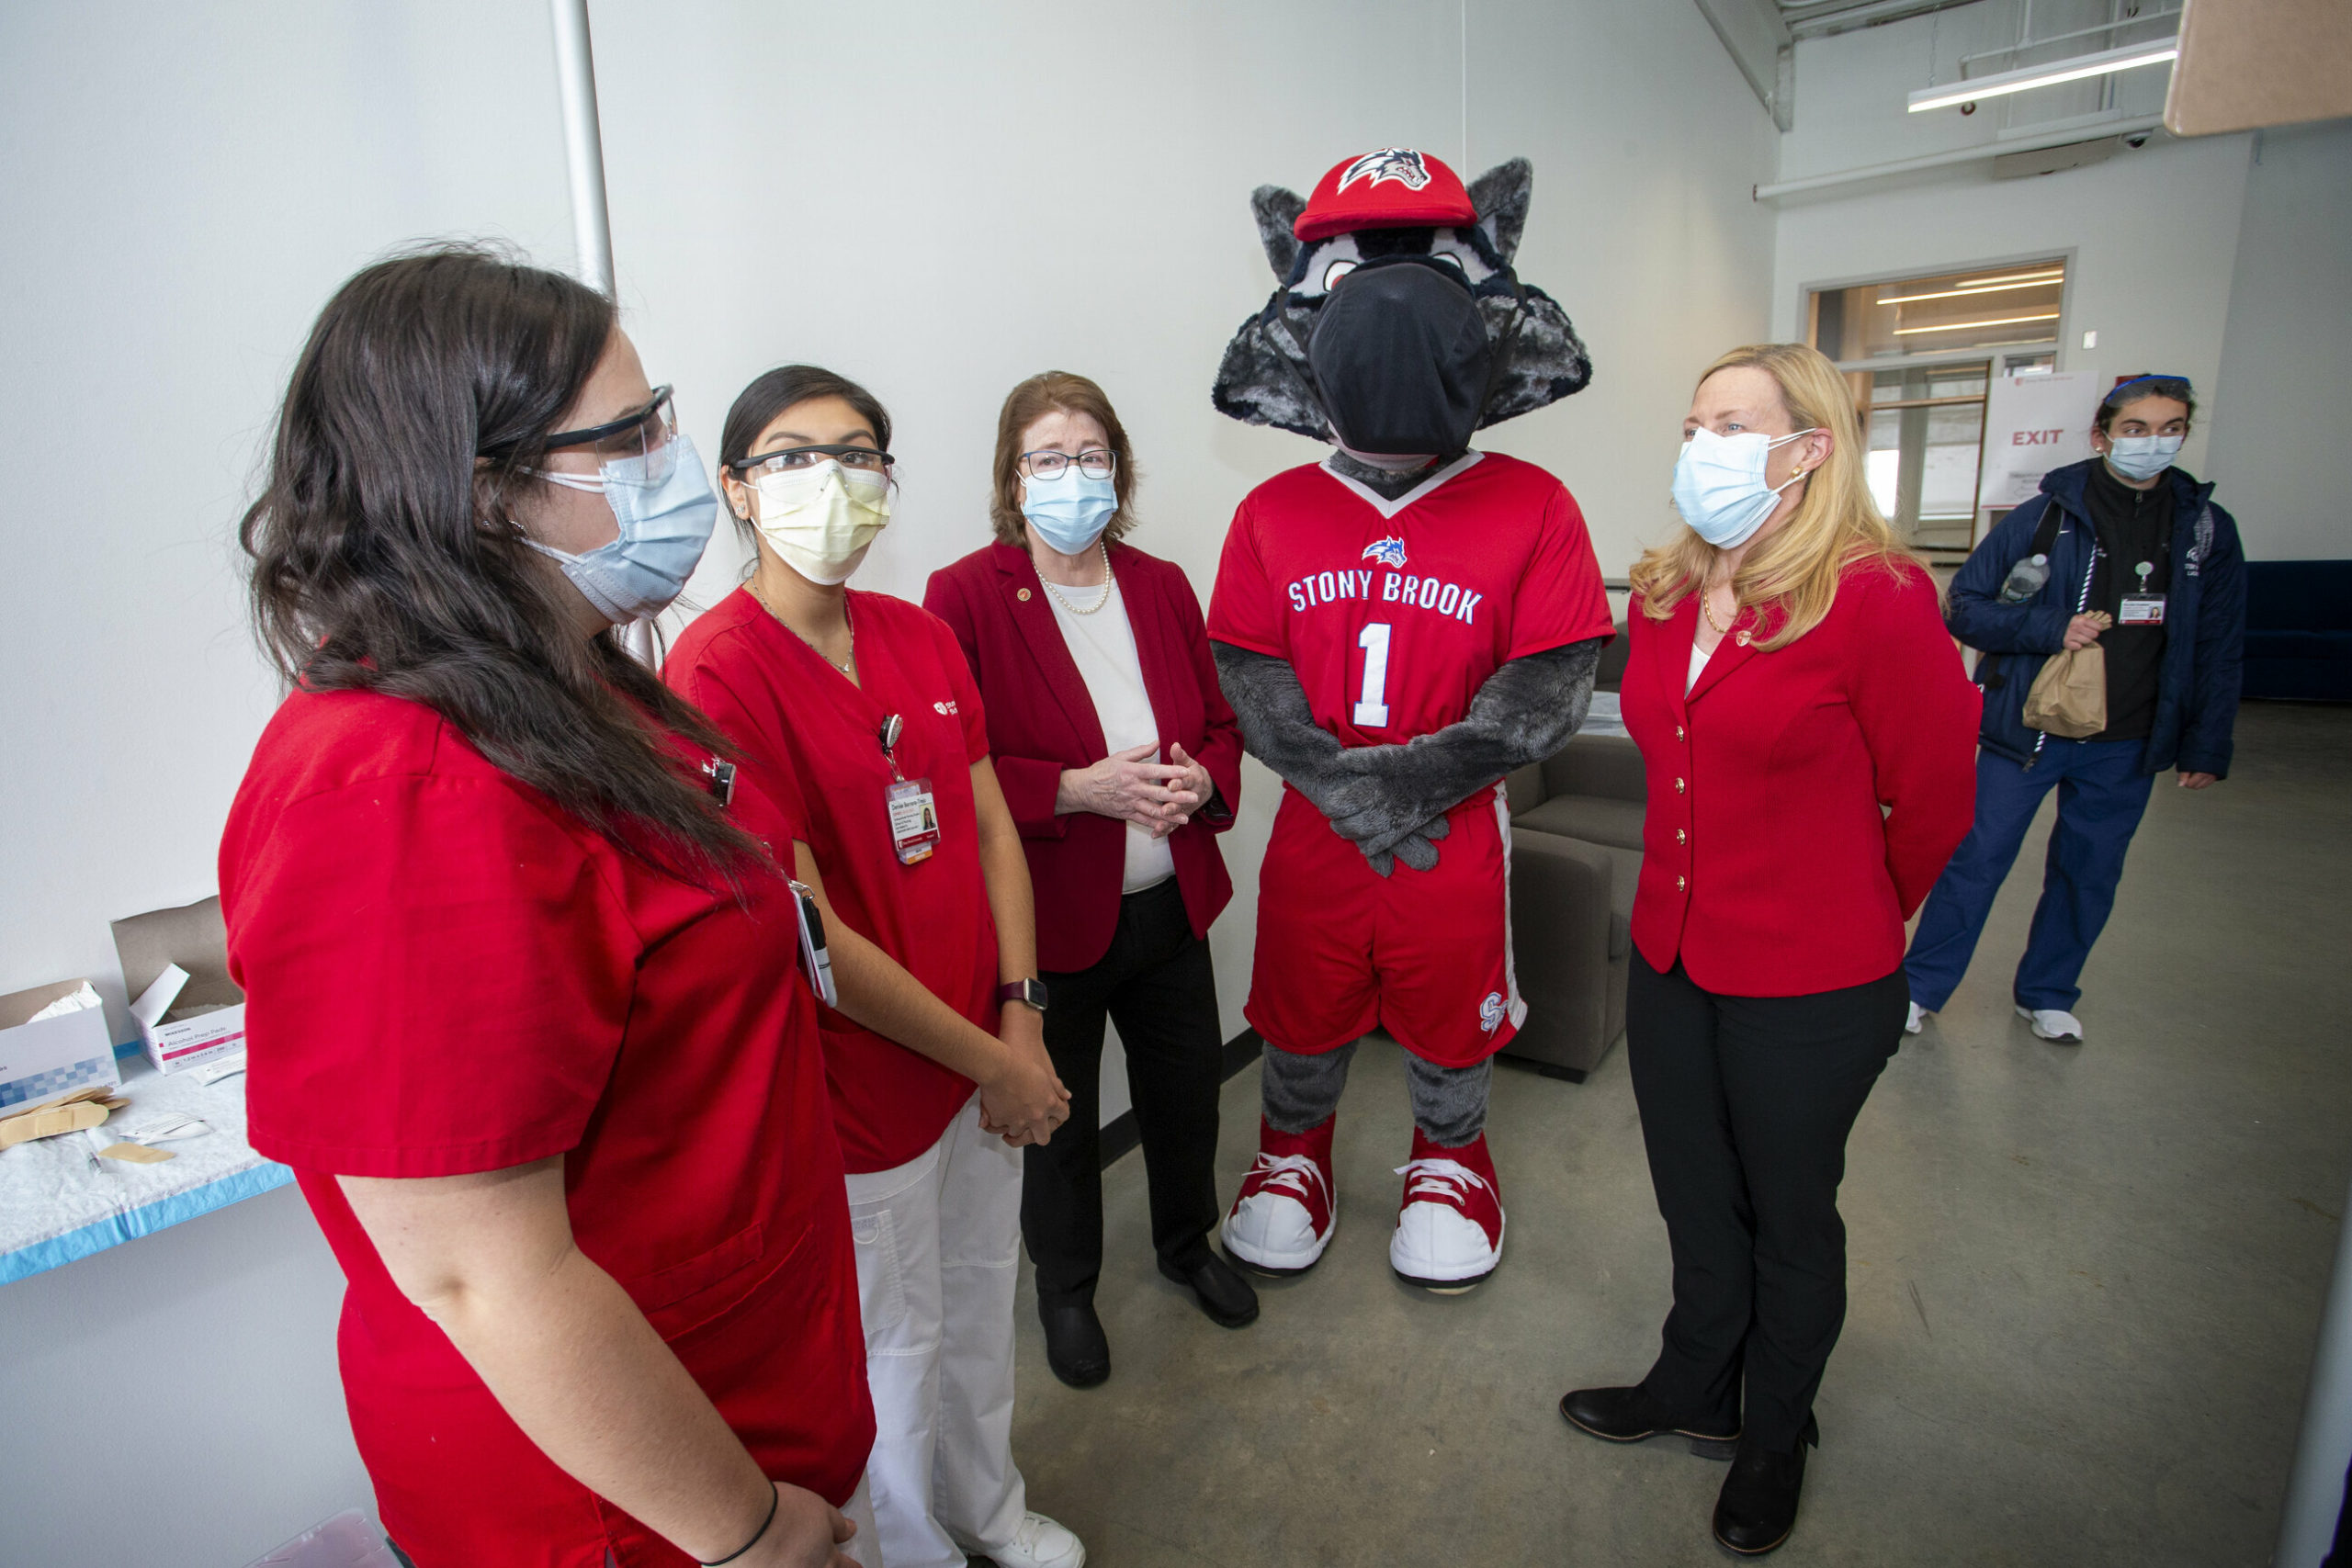 Dr. Maurie McInnis, President Of Stony Brook University, Wolfie and Dr. Margaret McGovern, Stony Brook Medicine Vice President for Health System Clinical Programs and Strategy, thank healthcare workers giving their time to help vaccinate Long Island.